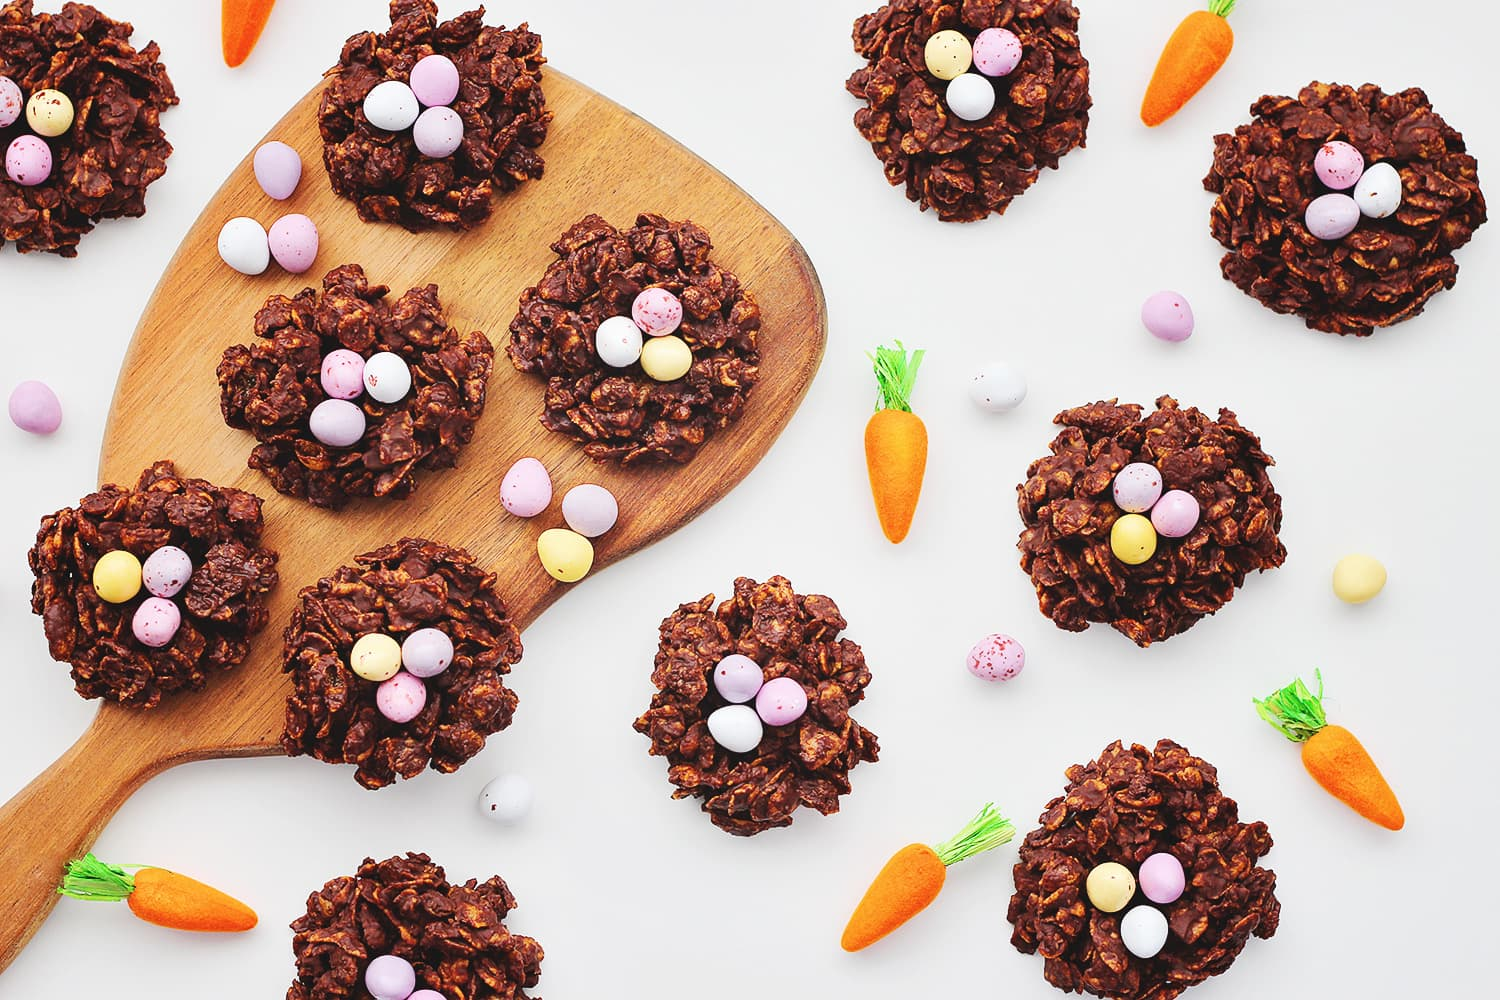 flat lay of Easter chocolate nests on a white table with mini chocolate eggs and carrot decorations scattered around